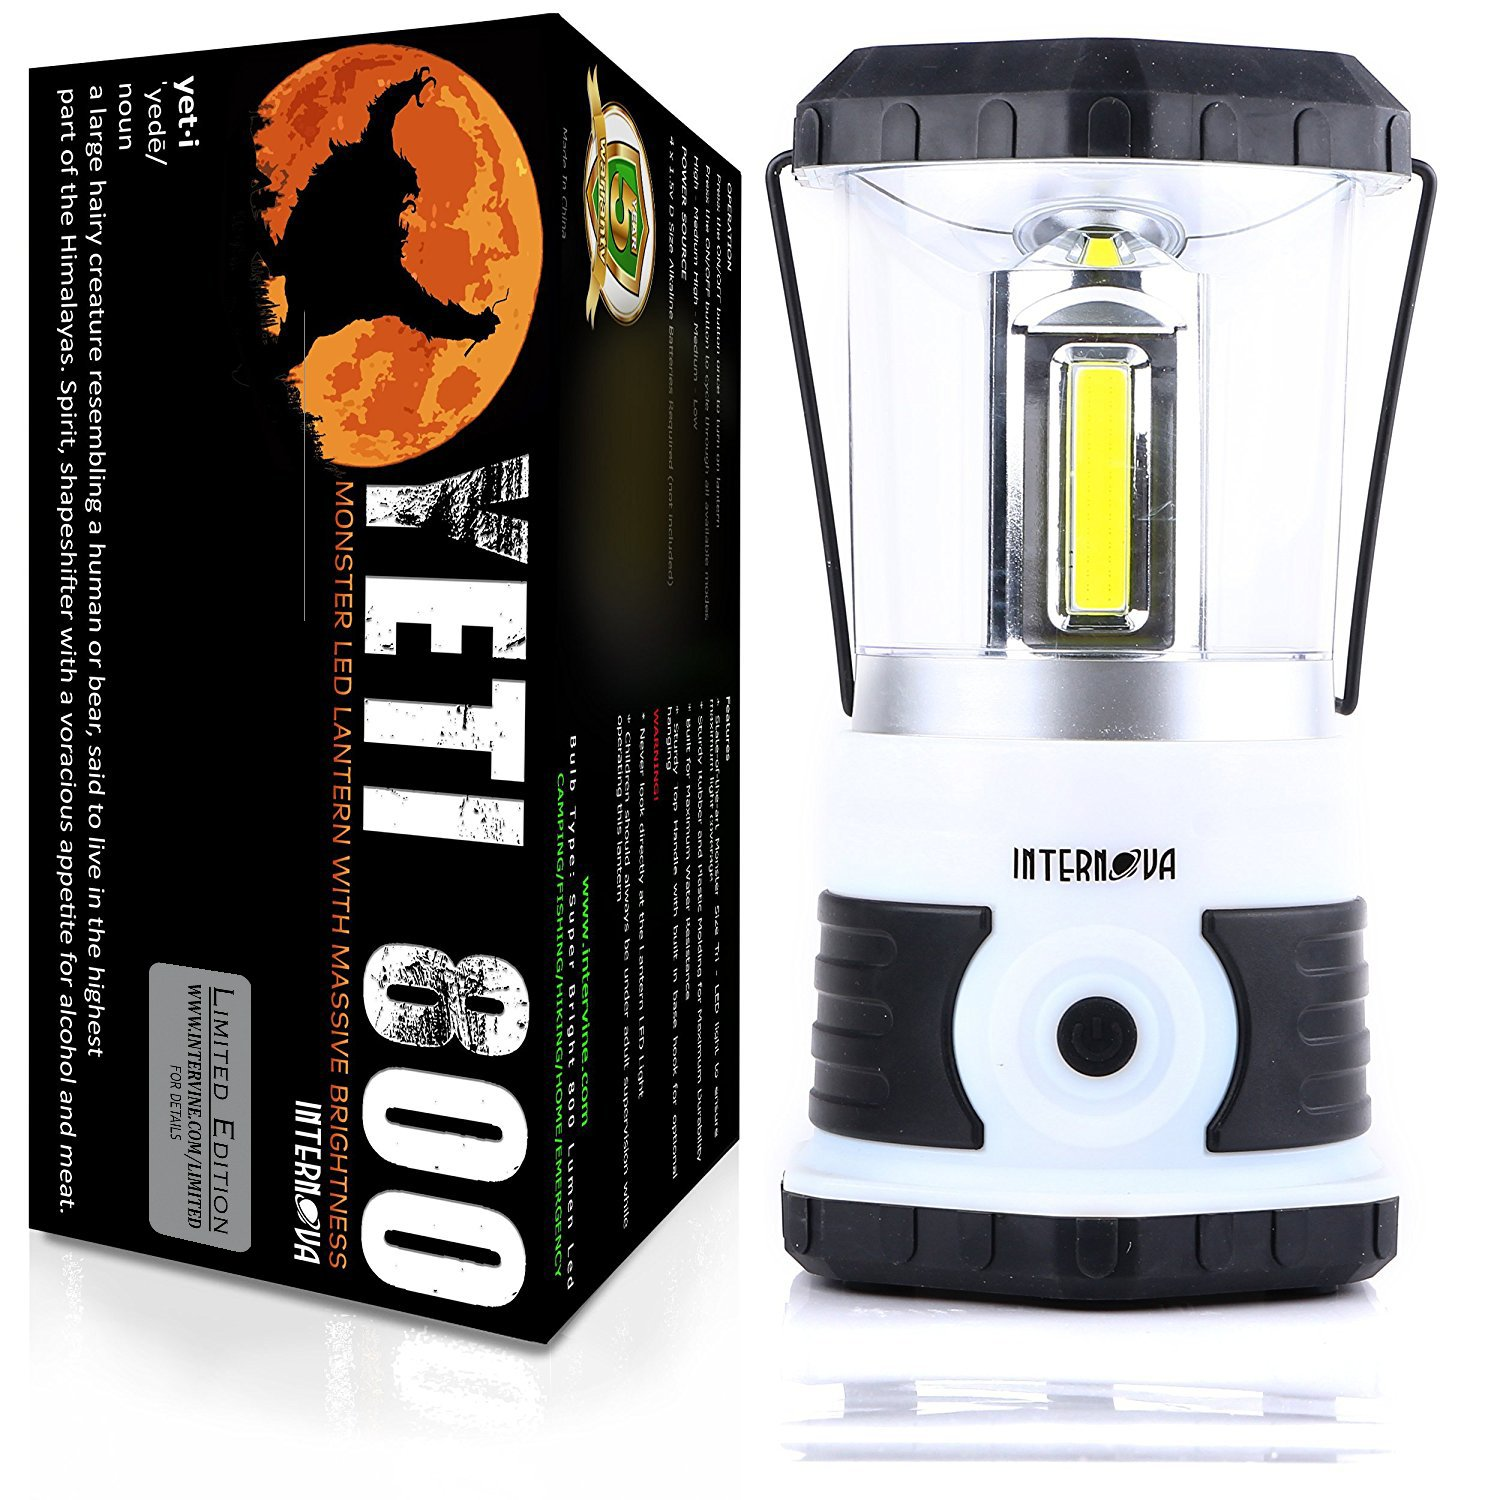 Internova Yeti 800 Monster LED Camping Lantern - Massive Brightness with Tri-Strip Lighting LED Lantern - Emergency - Backpacking - Hiking - Auto - Home - College - Hurricane Supplies